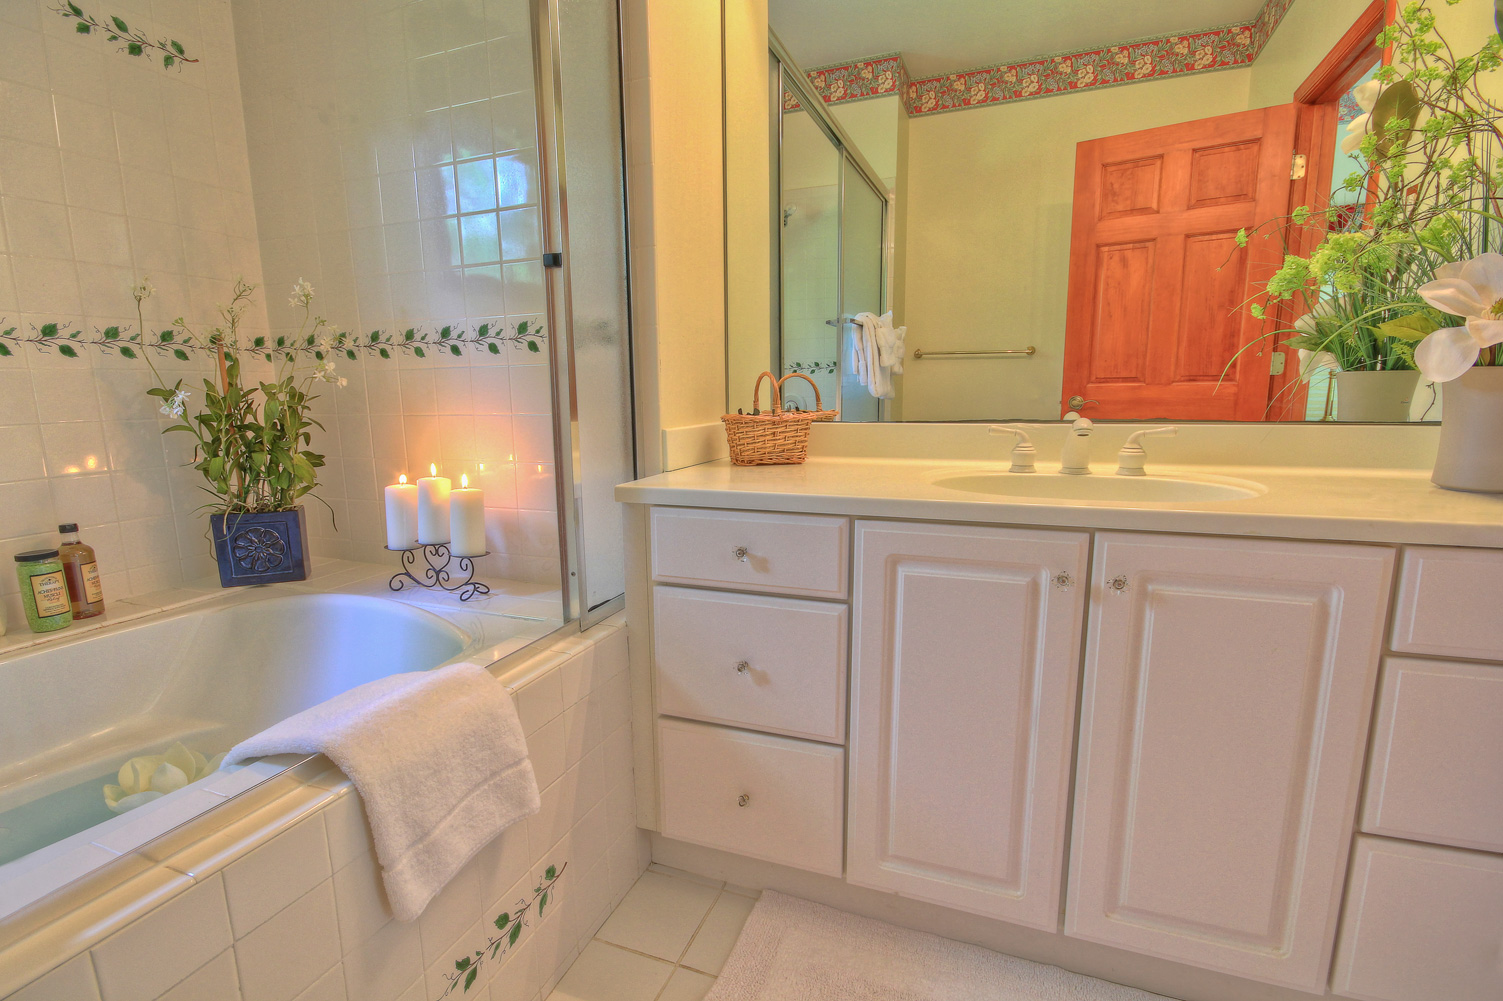 drawn tub with lit candles and vanity area in bathroom combsberry inn